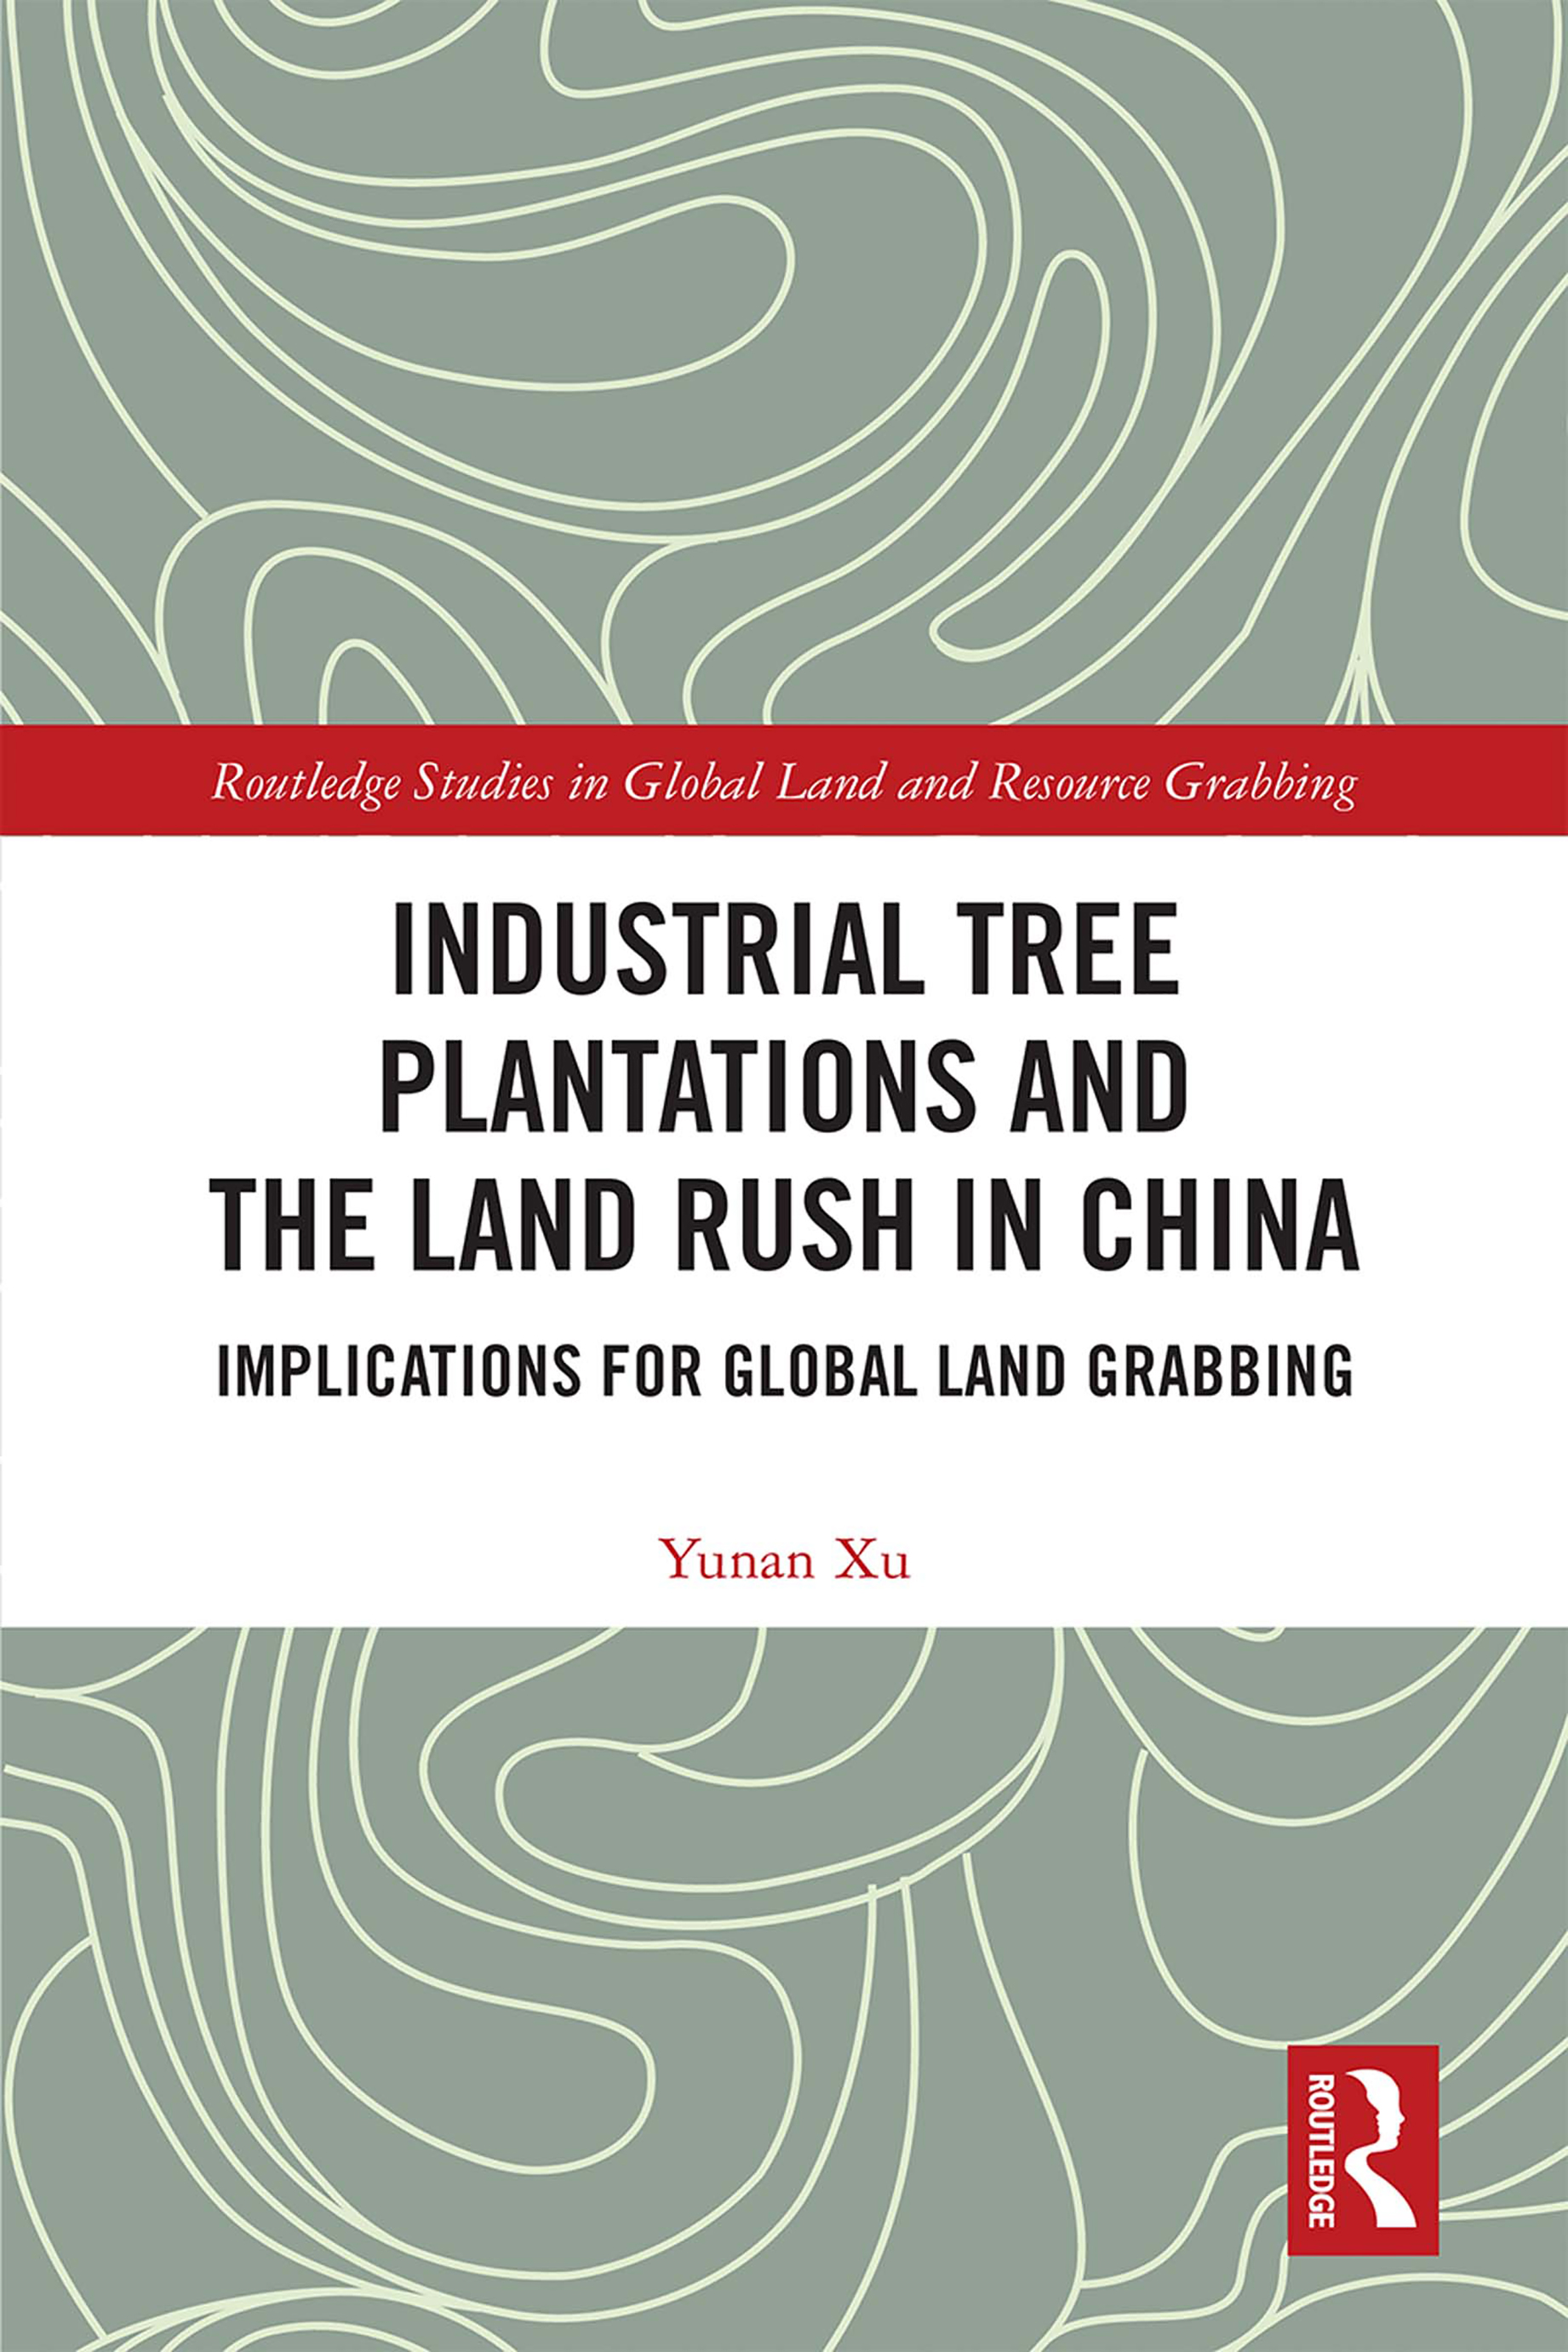 Industrial Tree Plantations and the Land Rush in China: Implications for Global Land Grabbing book cover